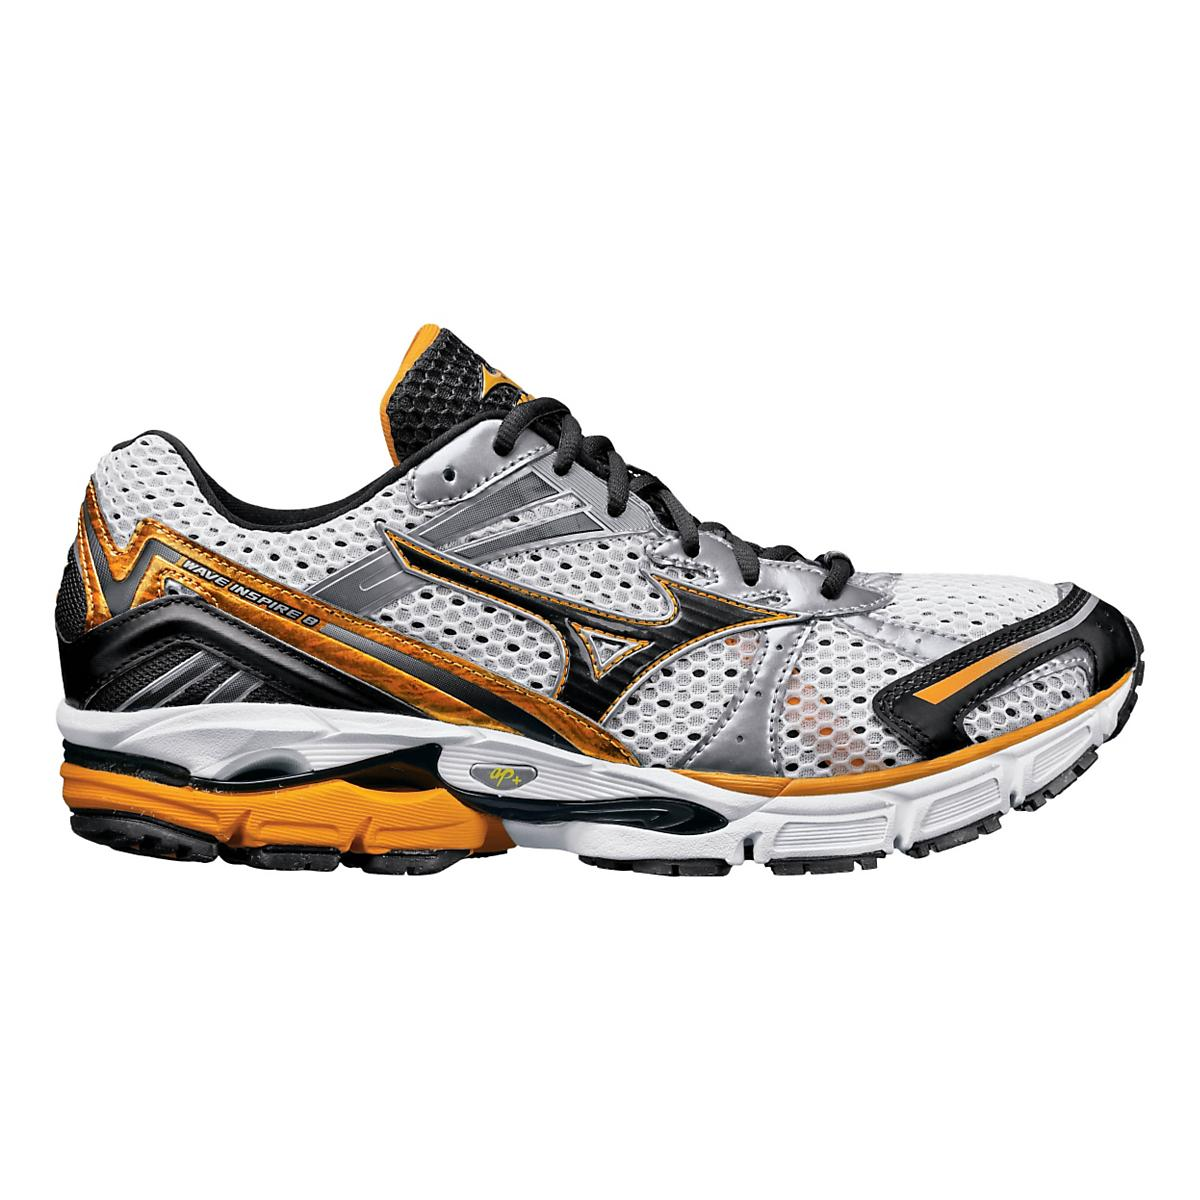 105a028ae2c8 Mens Mizuno Wave Inspire 8 Running Shoe at Road Runner Sports